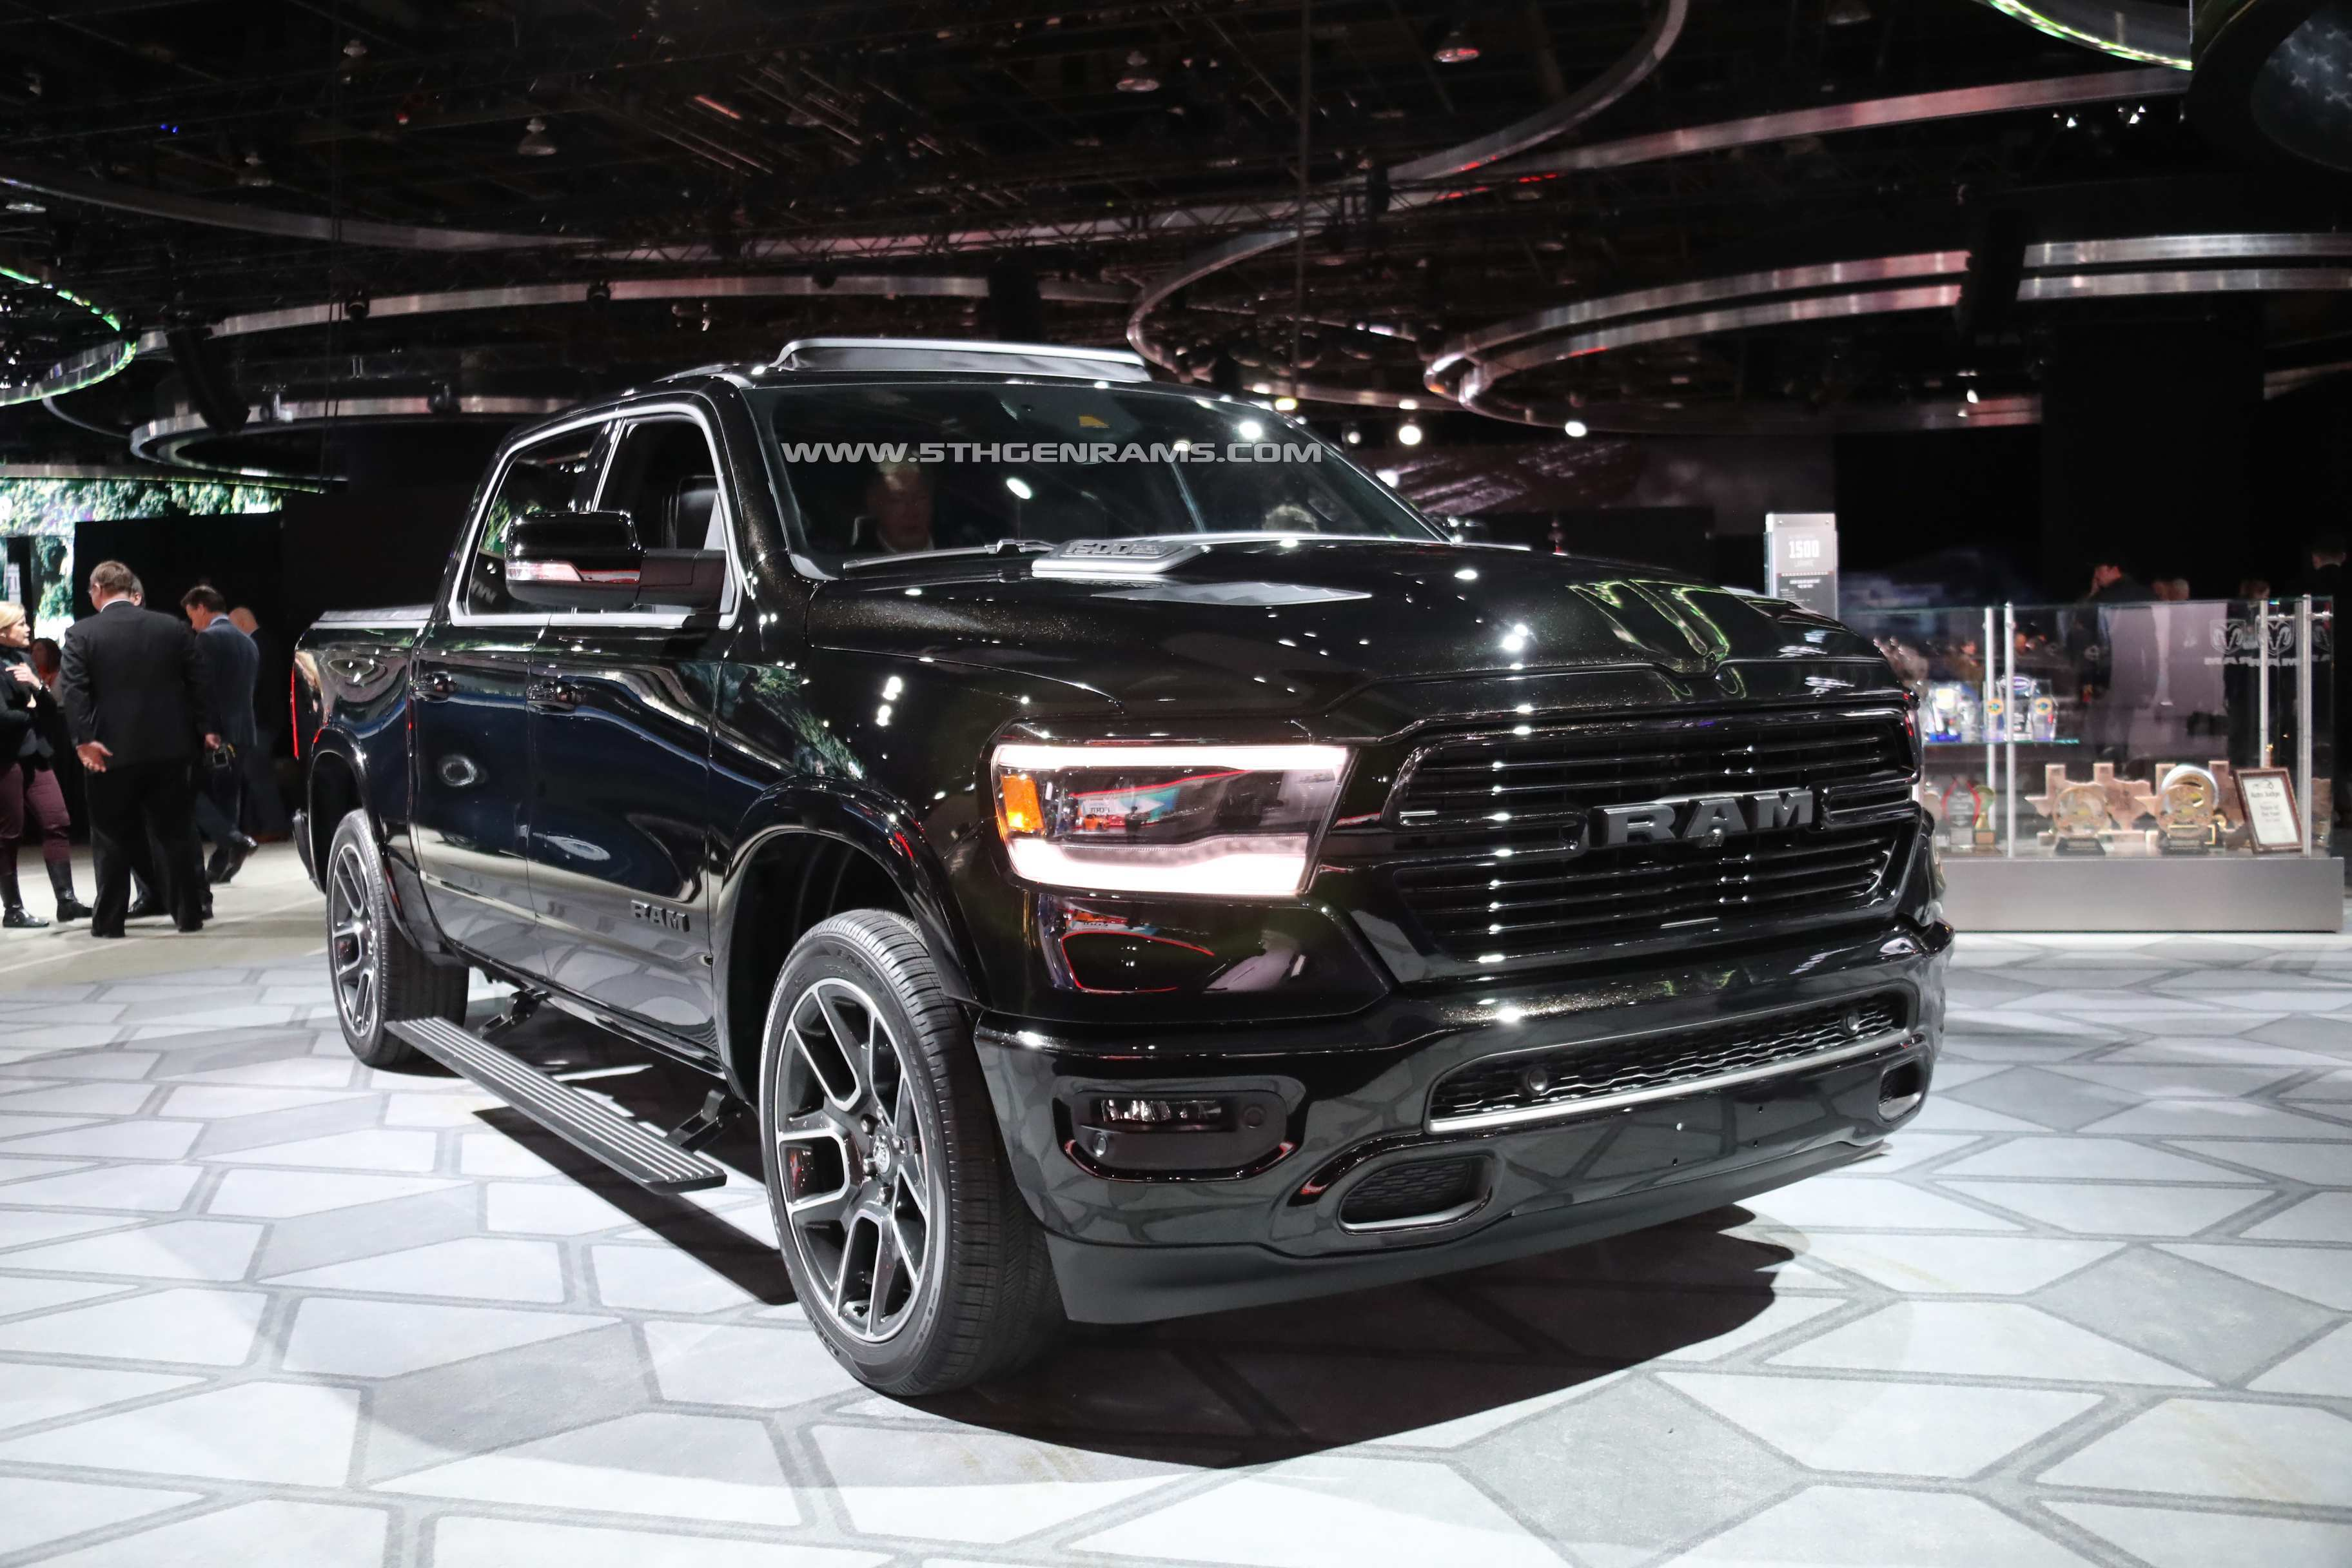 92 Best Review 2019 Dodge Ram Forum Exterior and Interior for 2019 Dodge Ram Forum